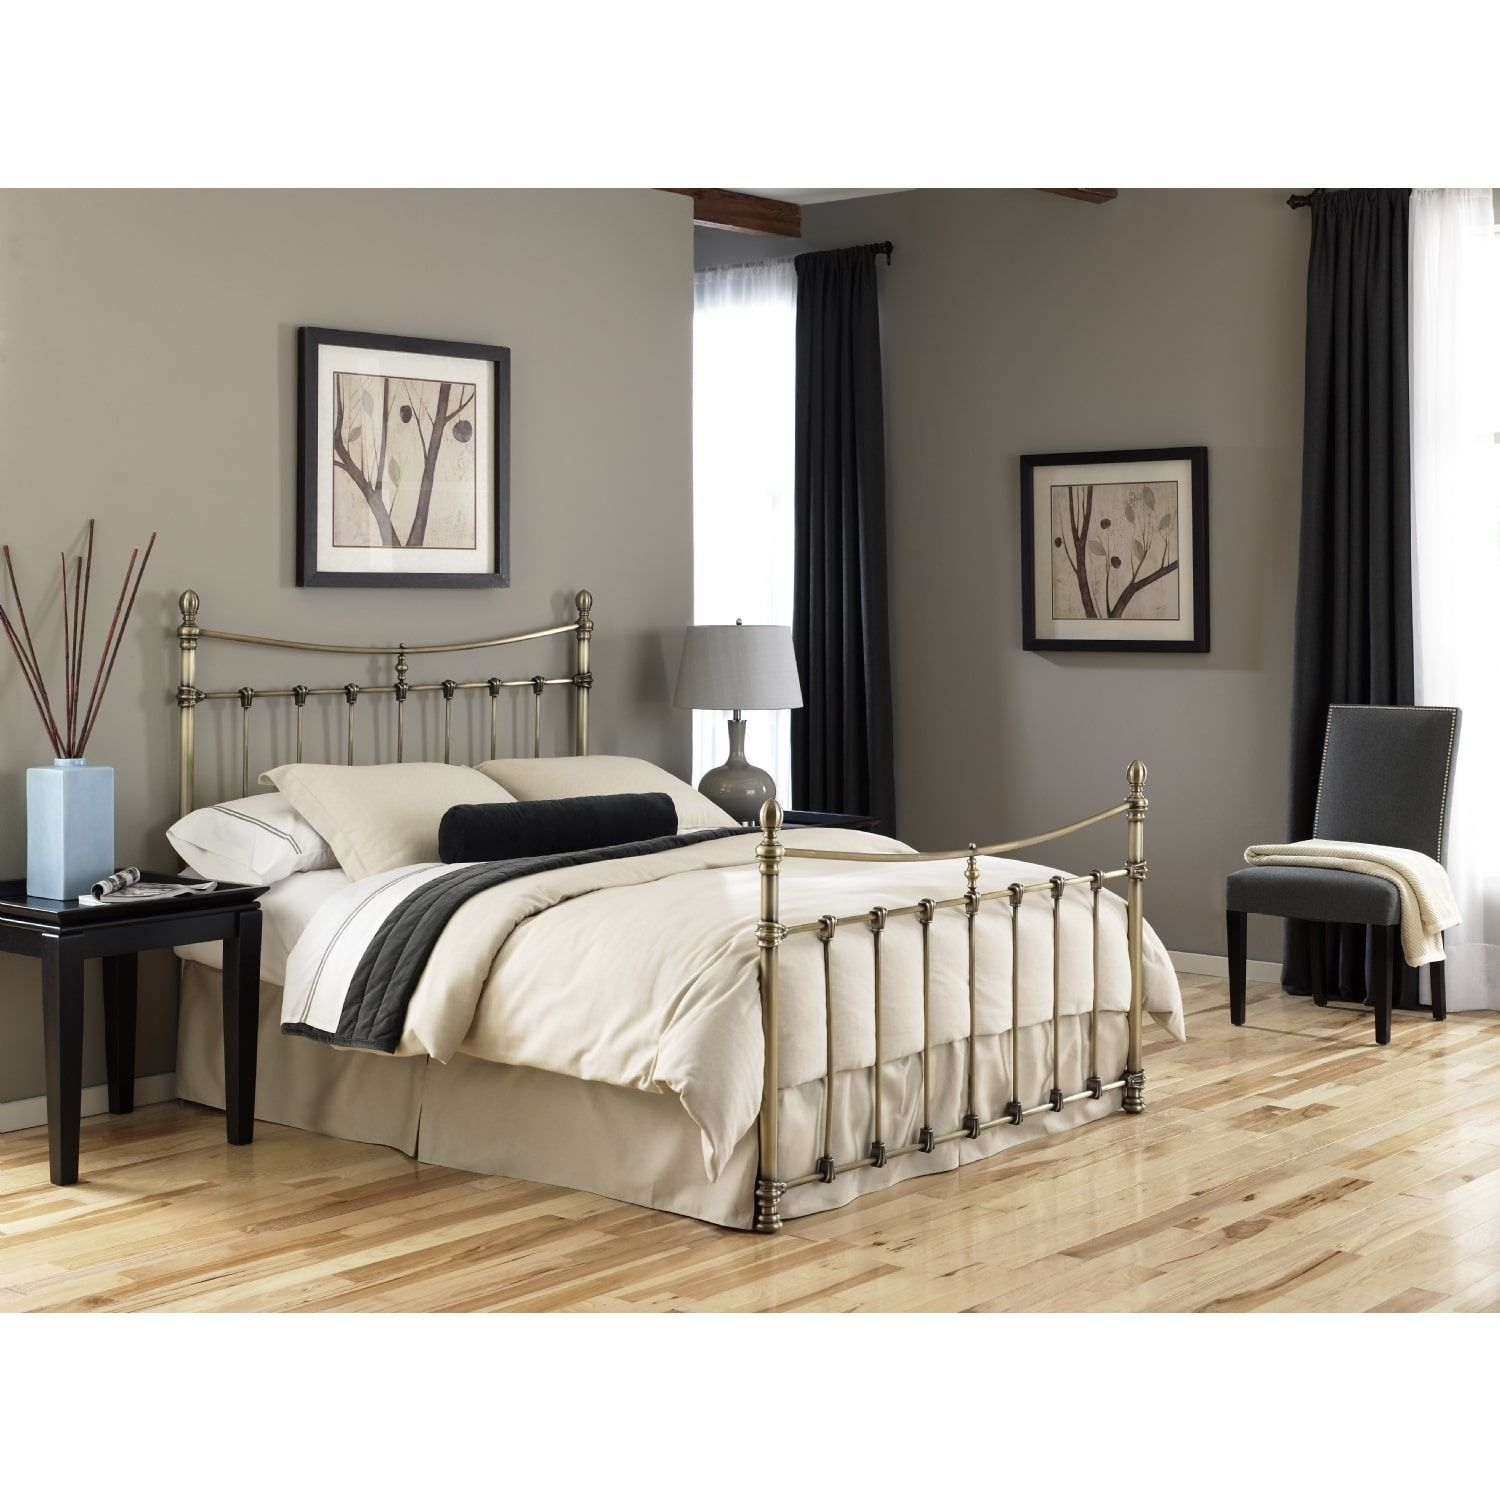 Leighton Antique style Brass Bed King Silver steel